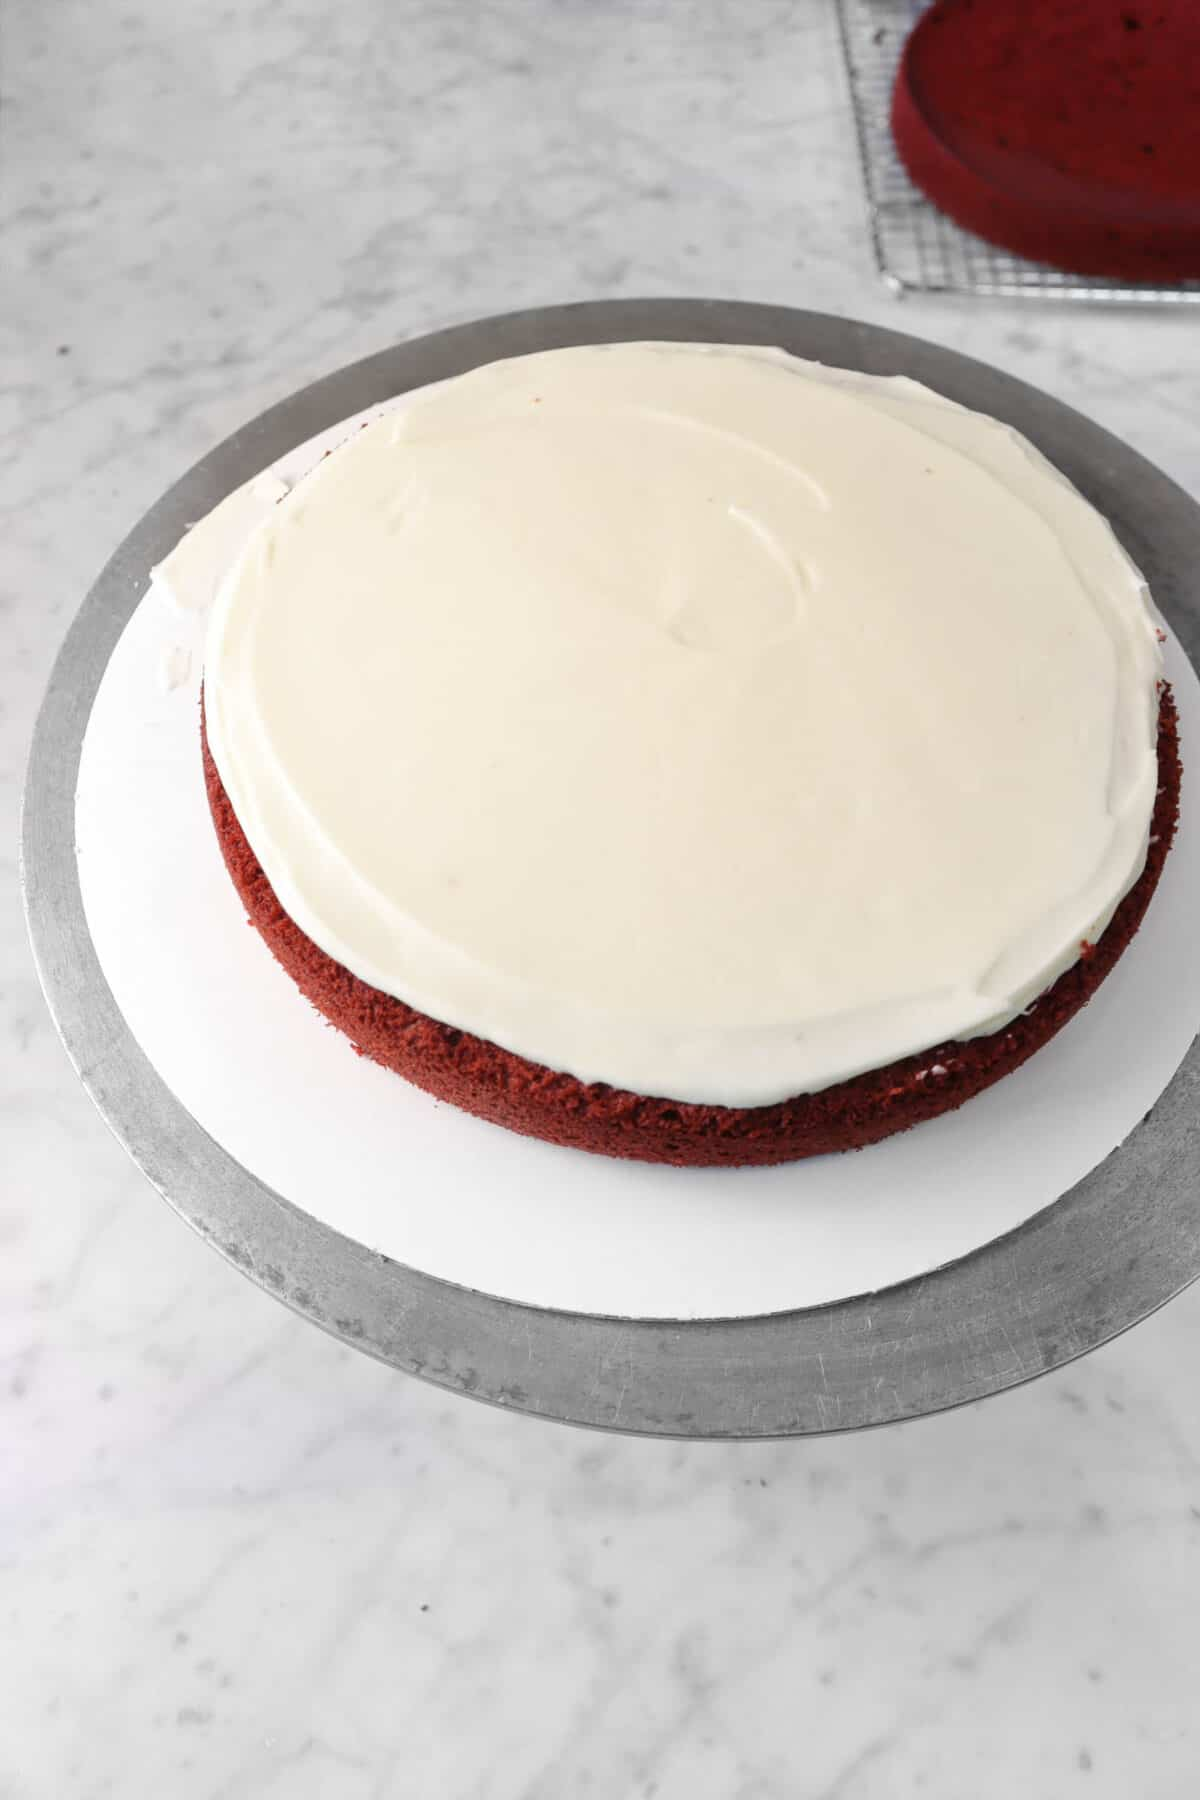 cream cheese frosting spread evenly across cake layer